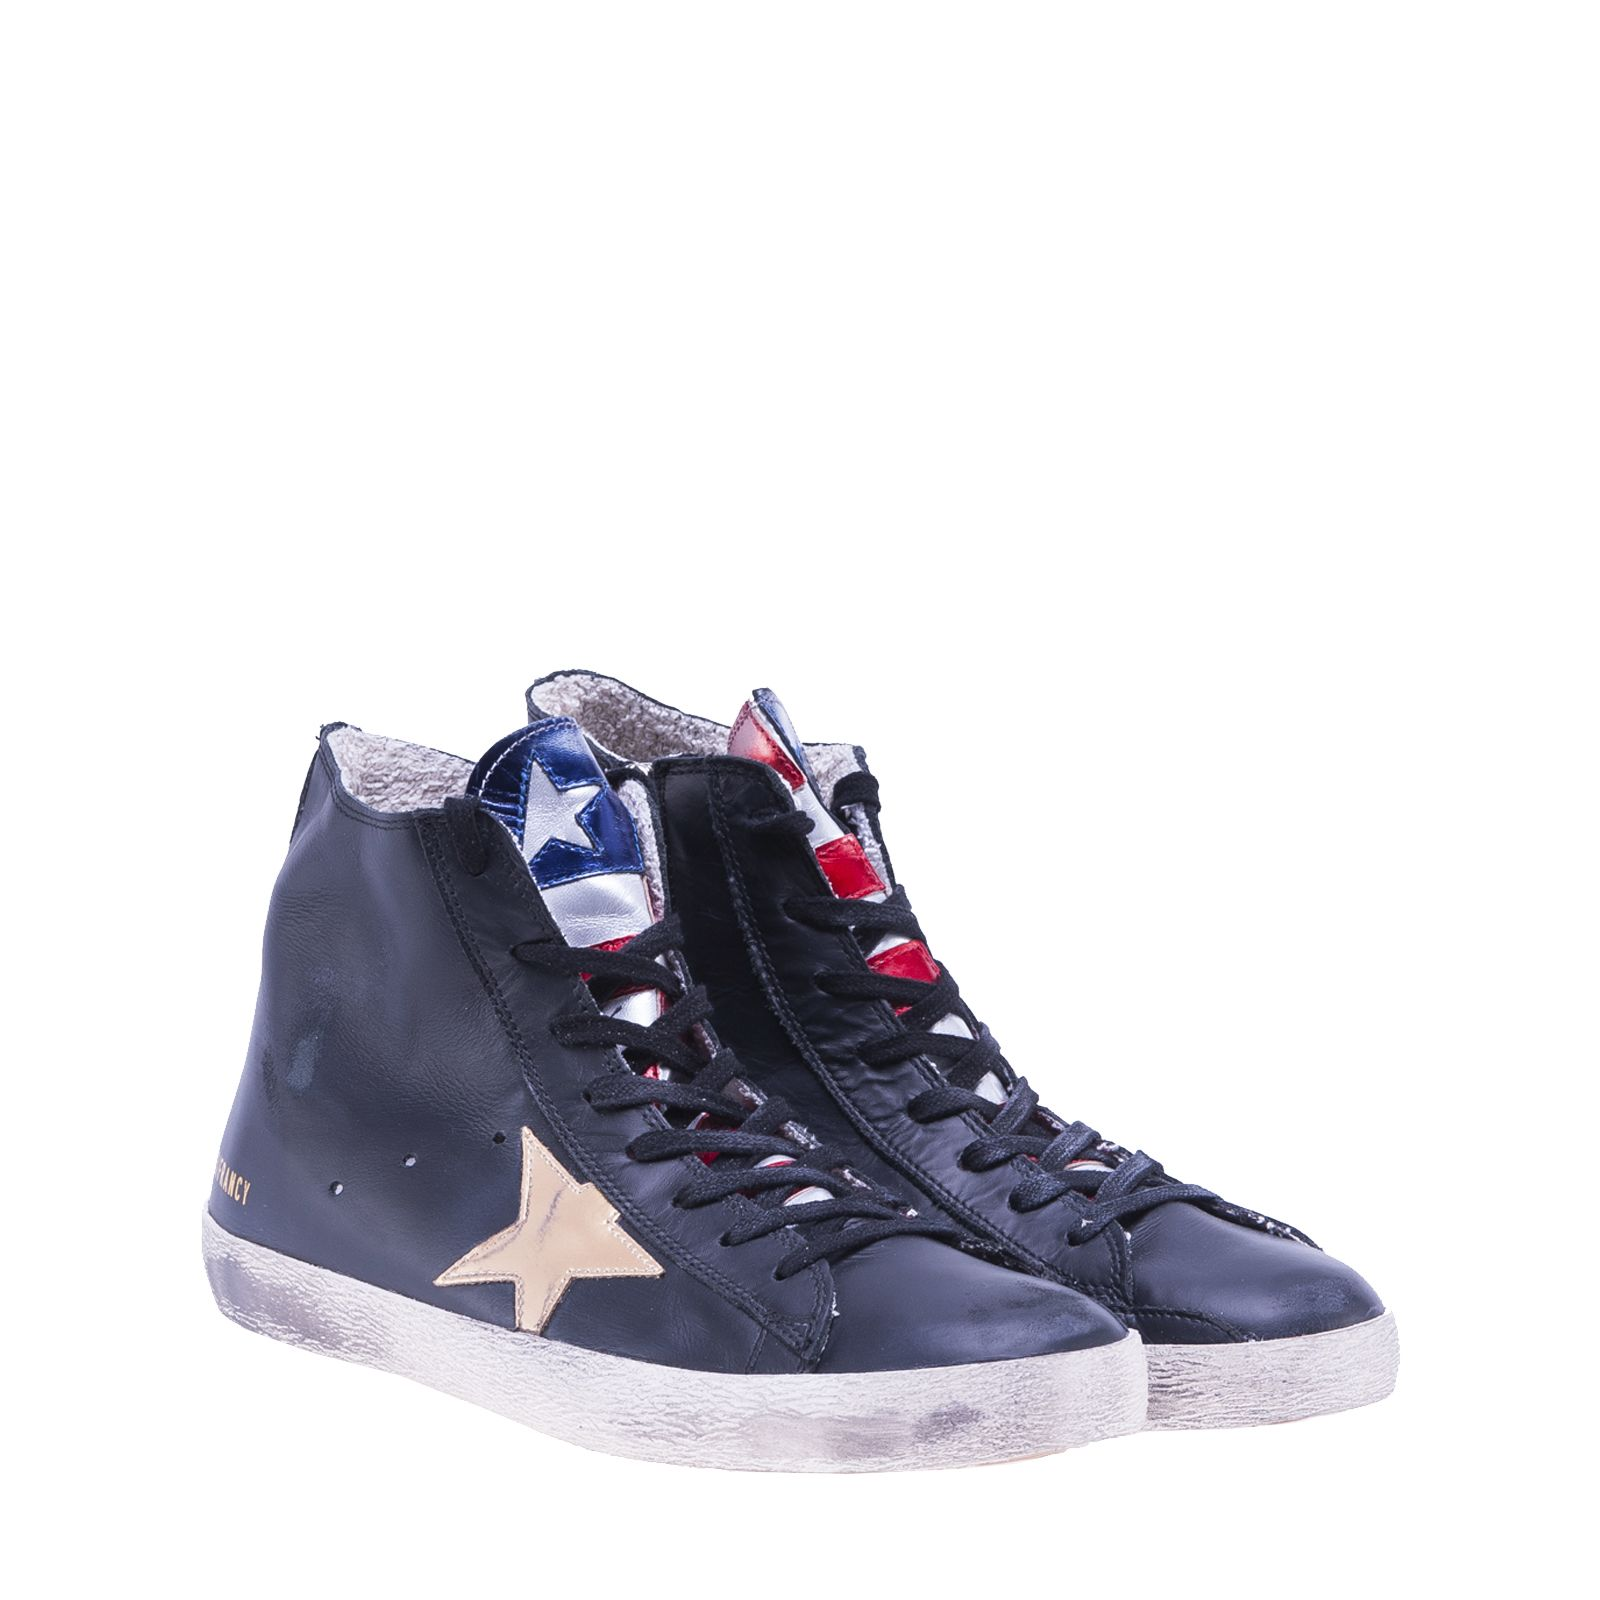 golden goose golden goose deluxe brand francy hi top sneakers black gold men 39 s sneakers. Black Bedroom Furniture Sets. Home Design Ideas